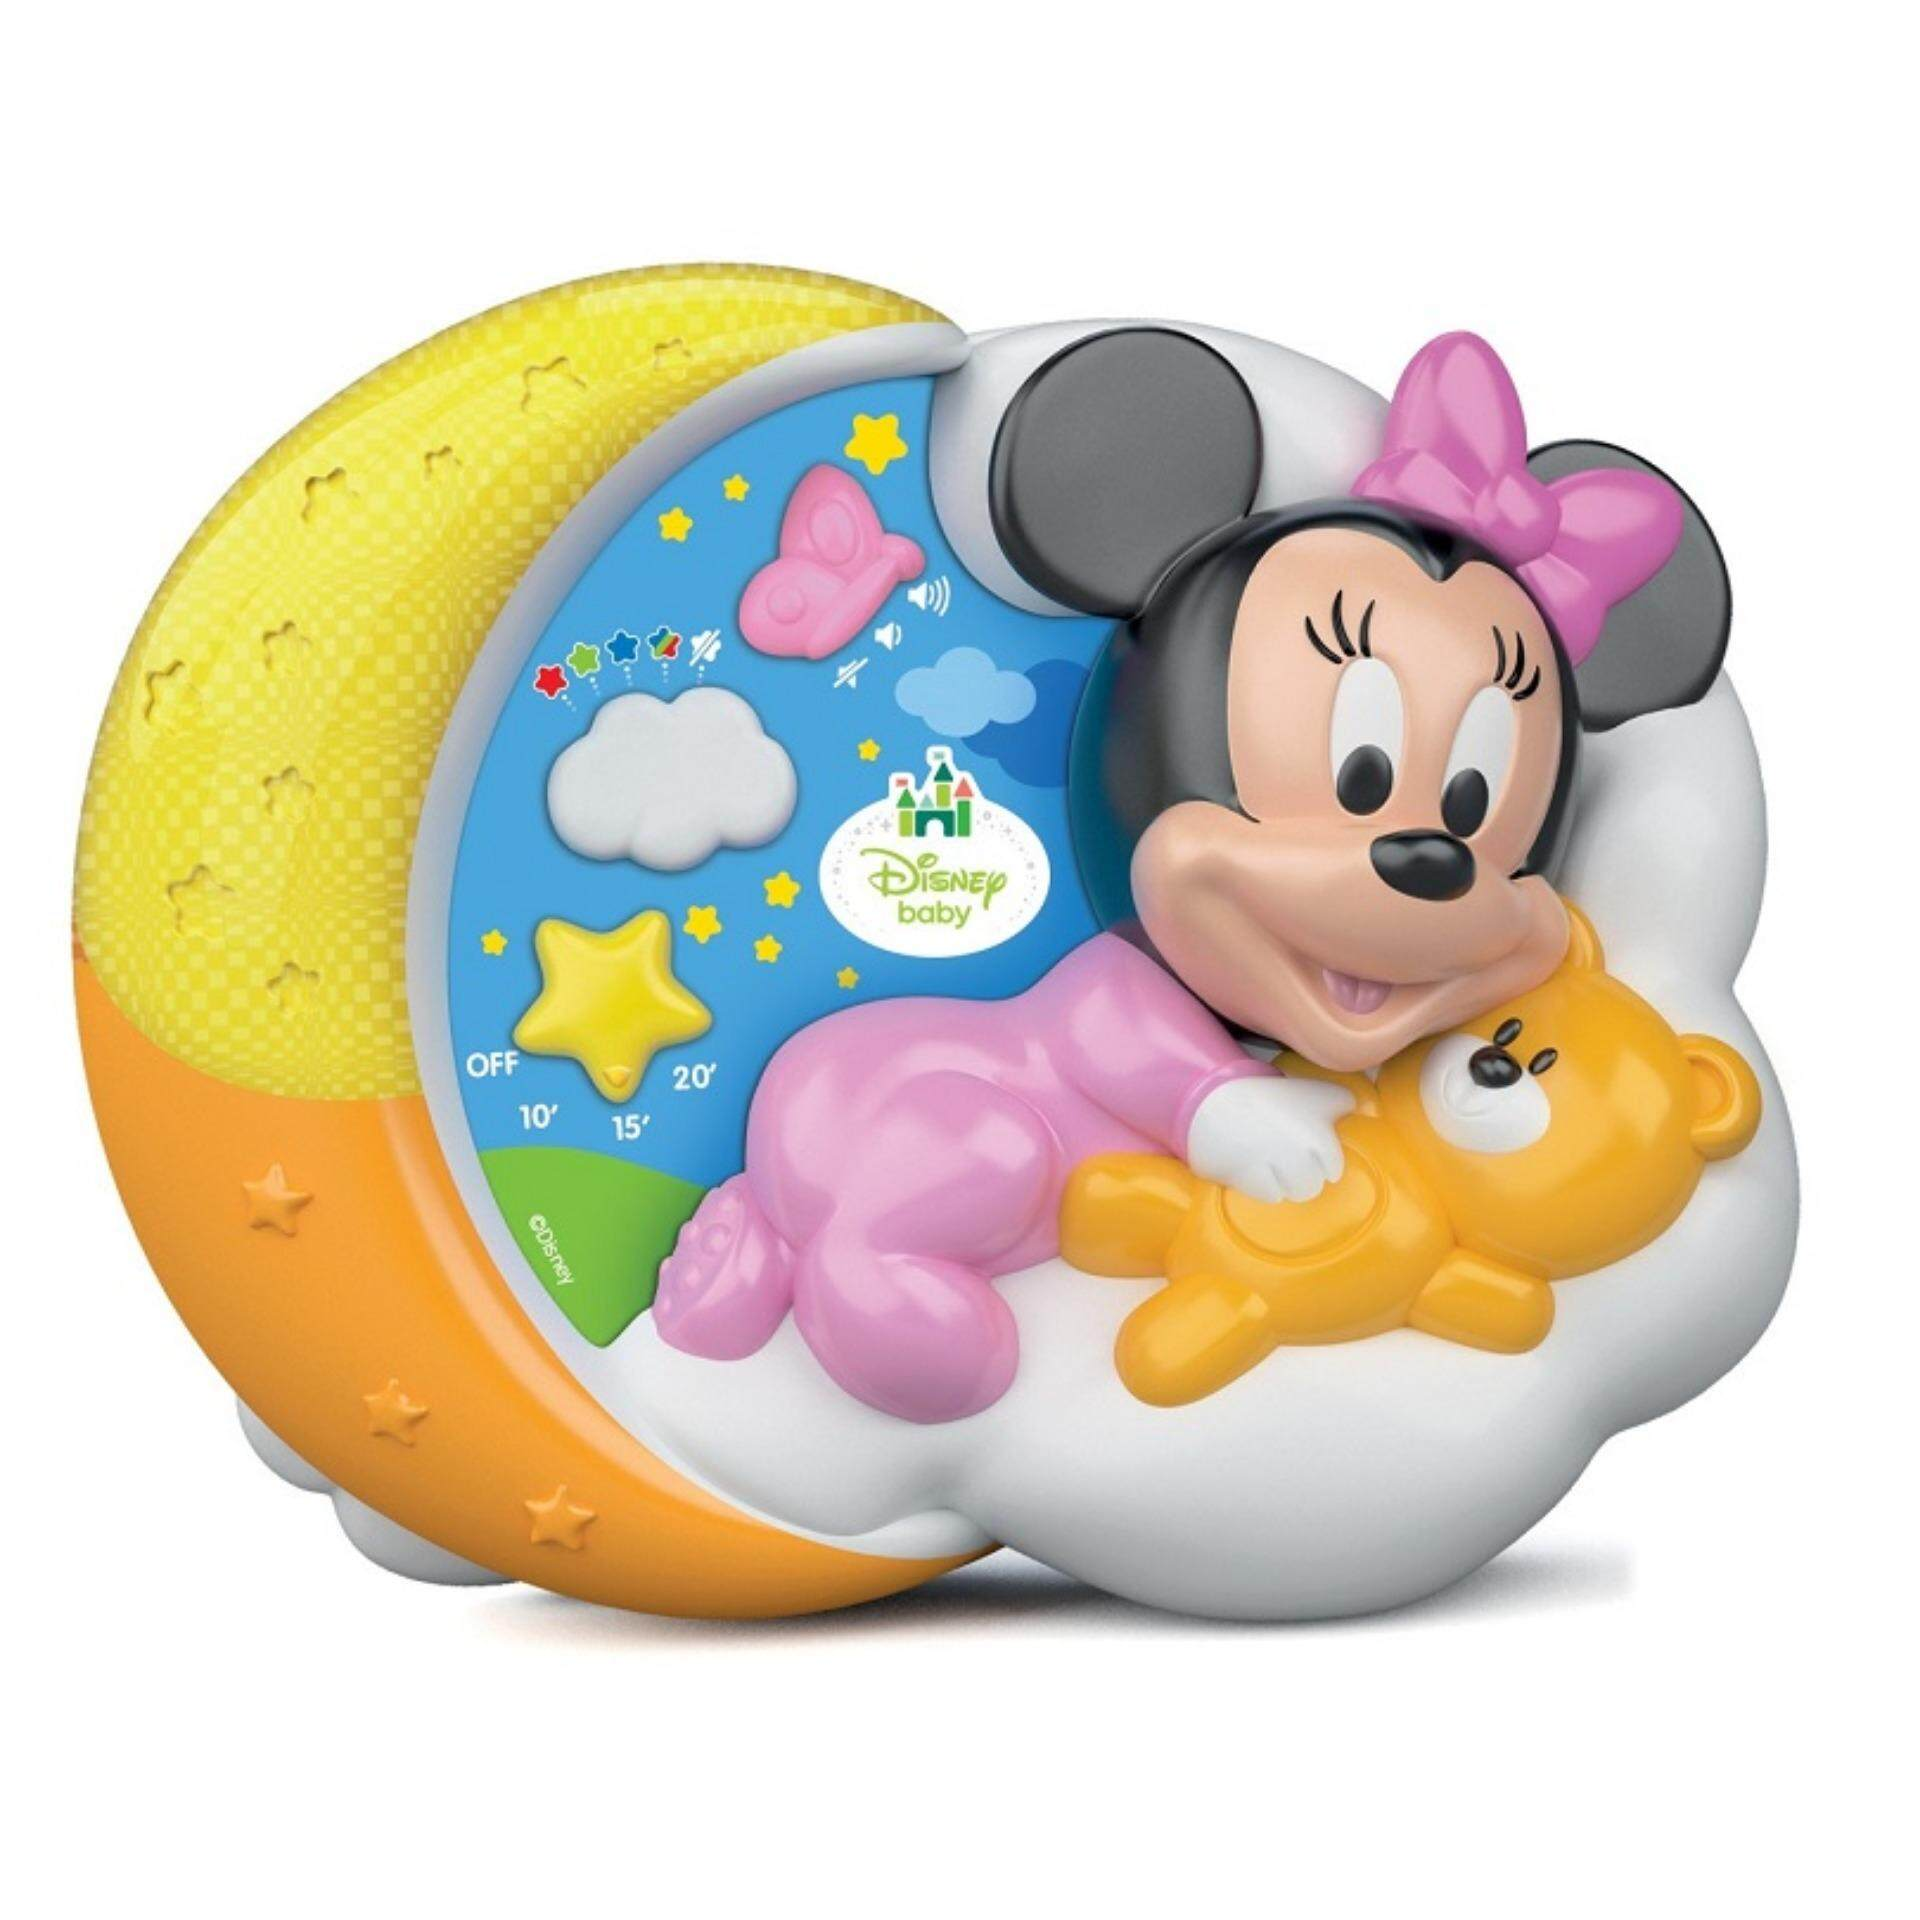 Disney Baby Developmental Magical Stars Figural Projector Musical Toys - Minnie toys education